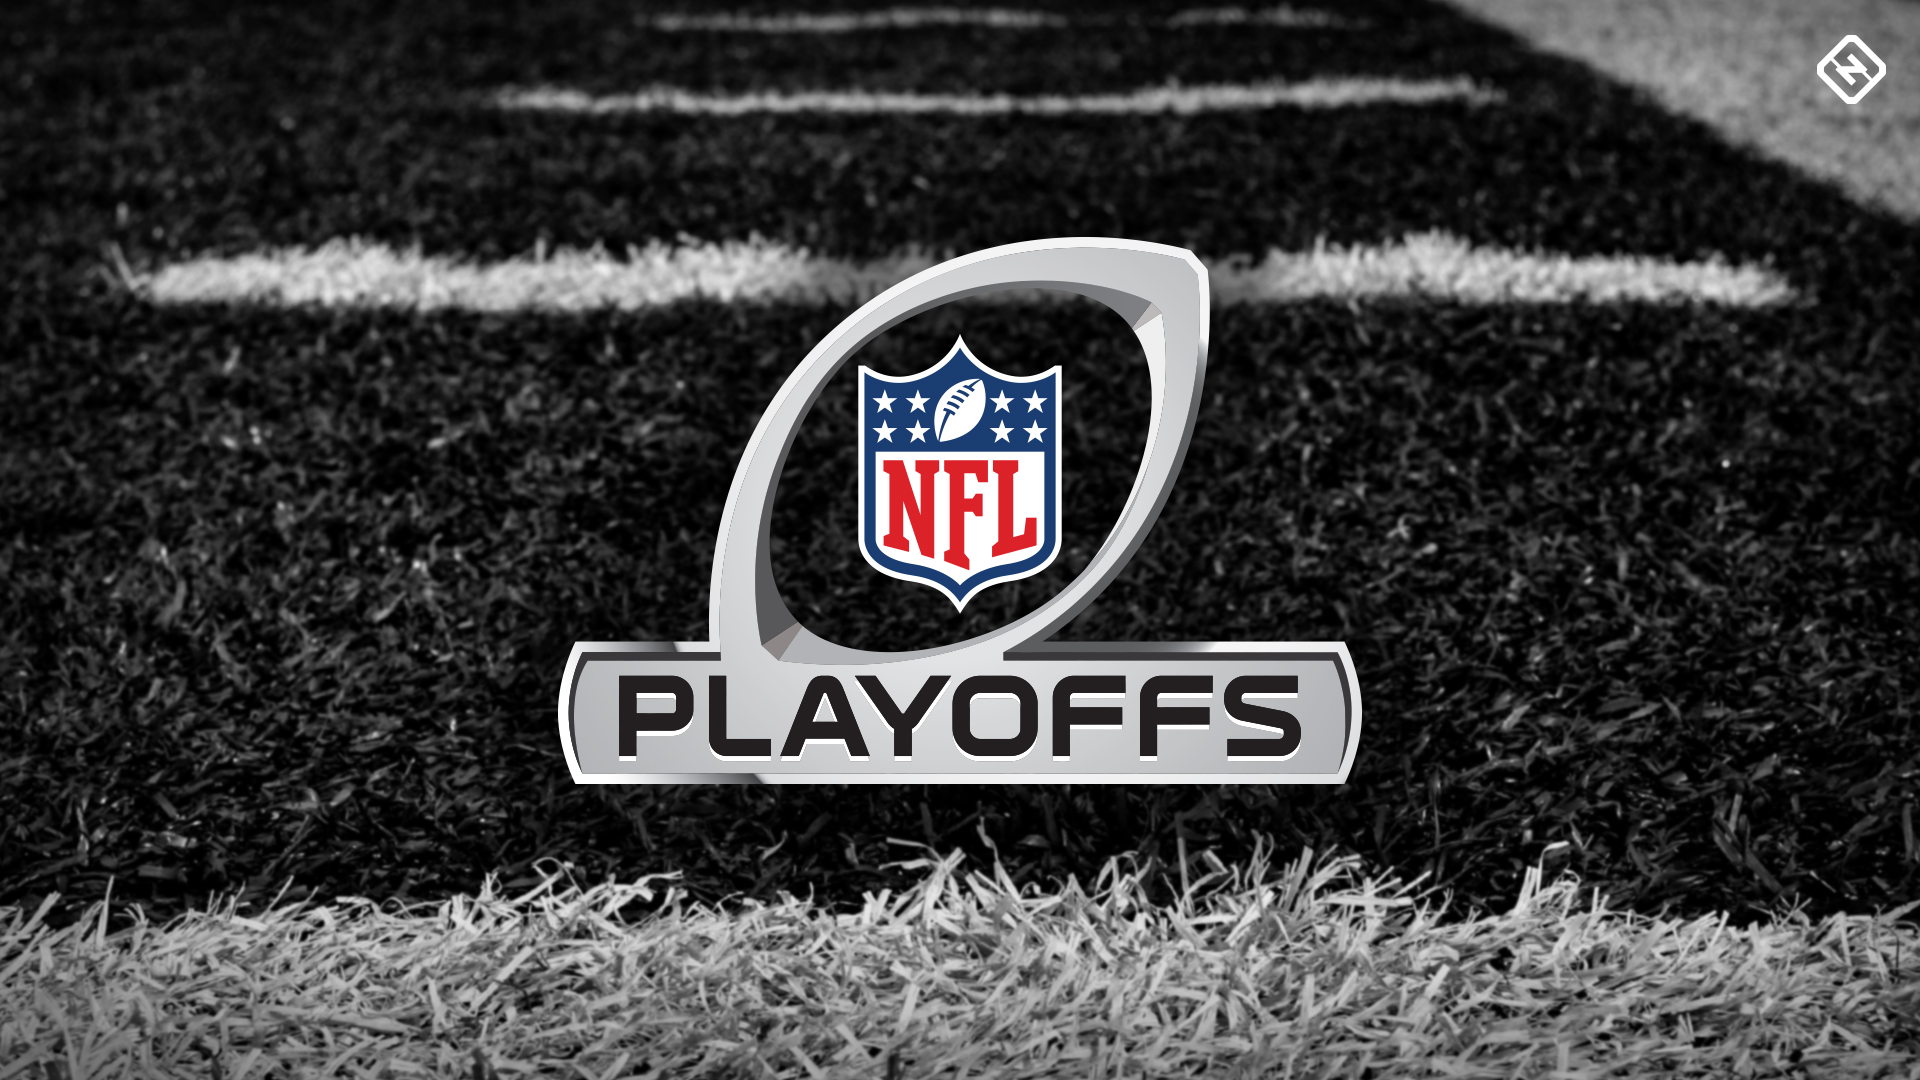 EZVideo Tip: Catch all the NFL playoff action with Replay TV and DVR!